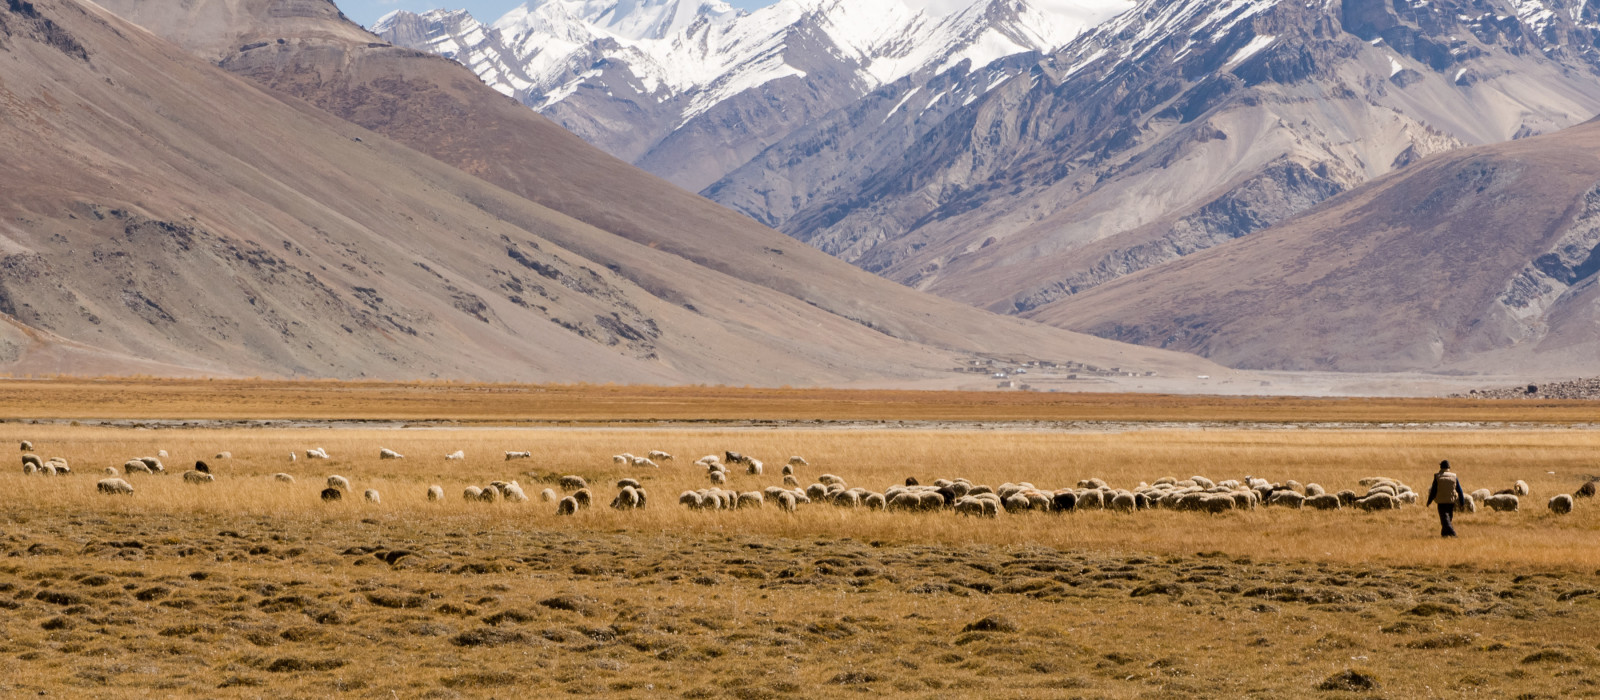 A Nomad with his sheep herd in Zanskar Valley, India